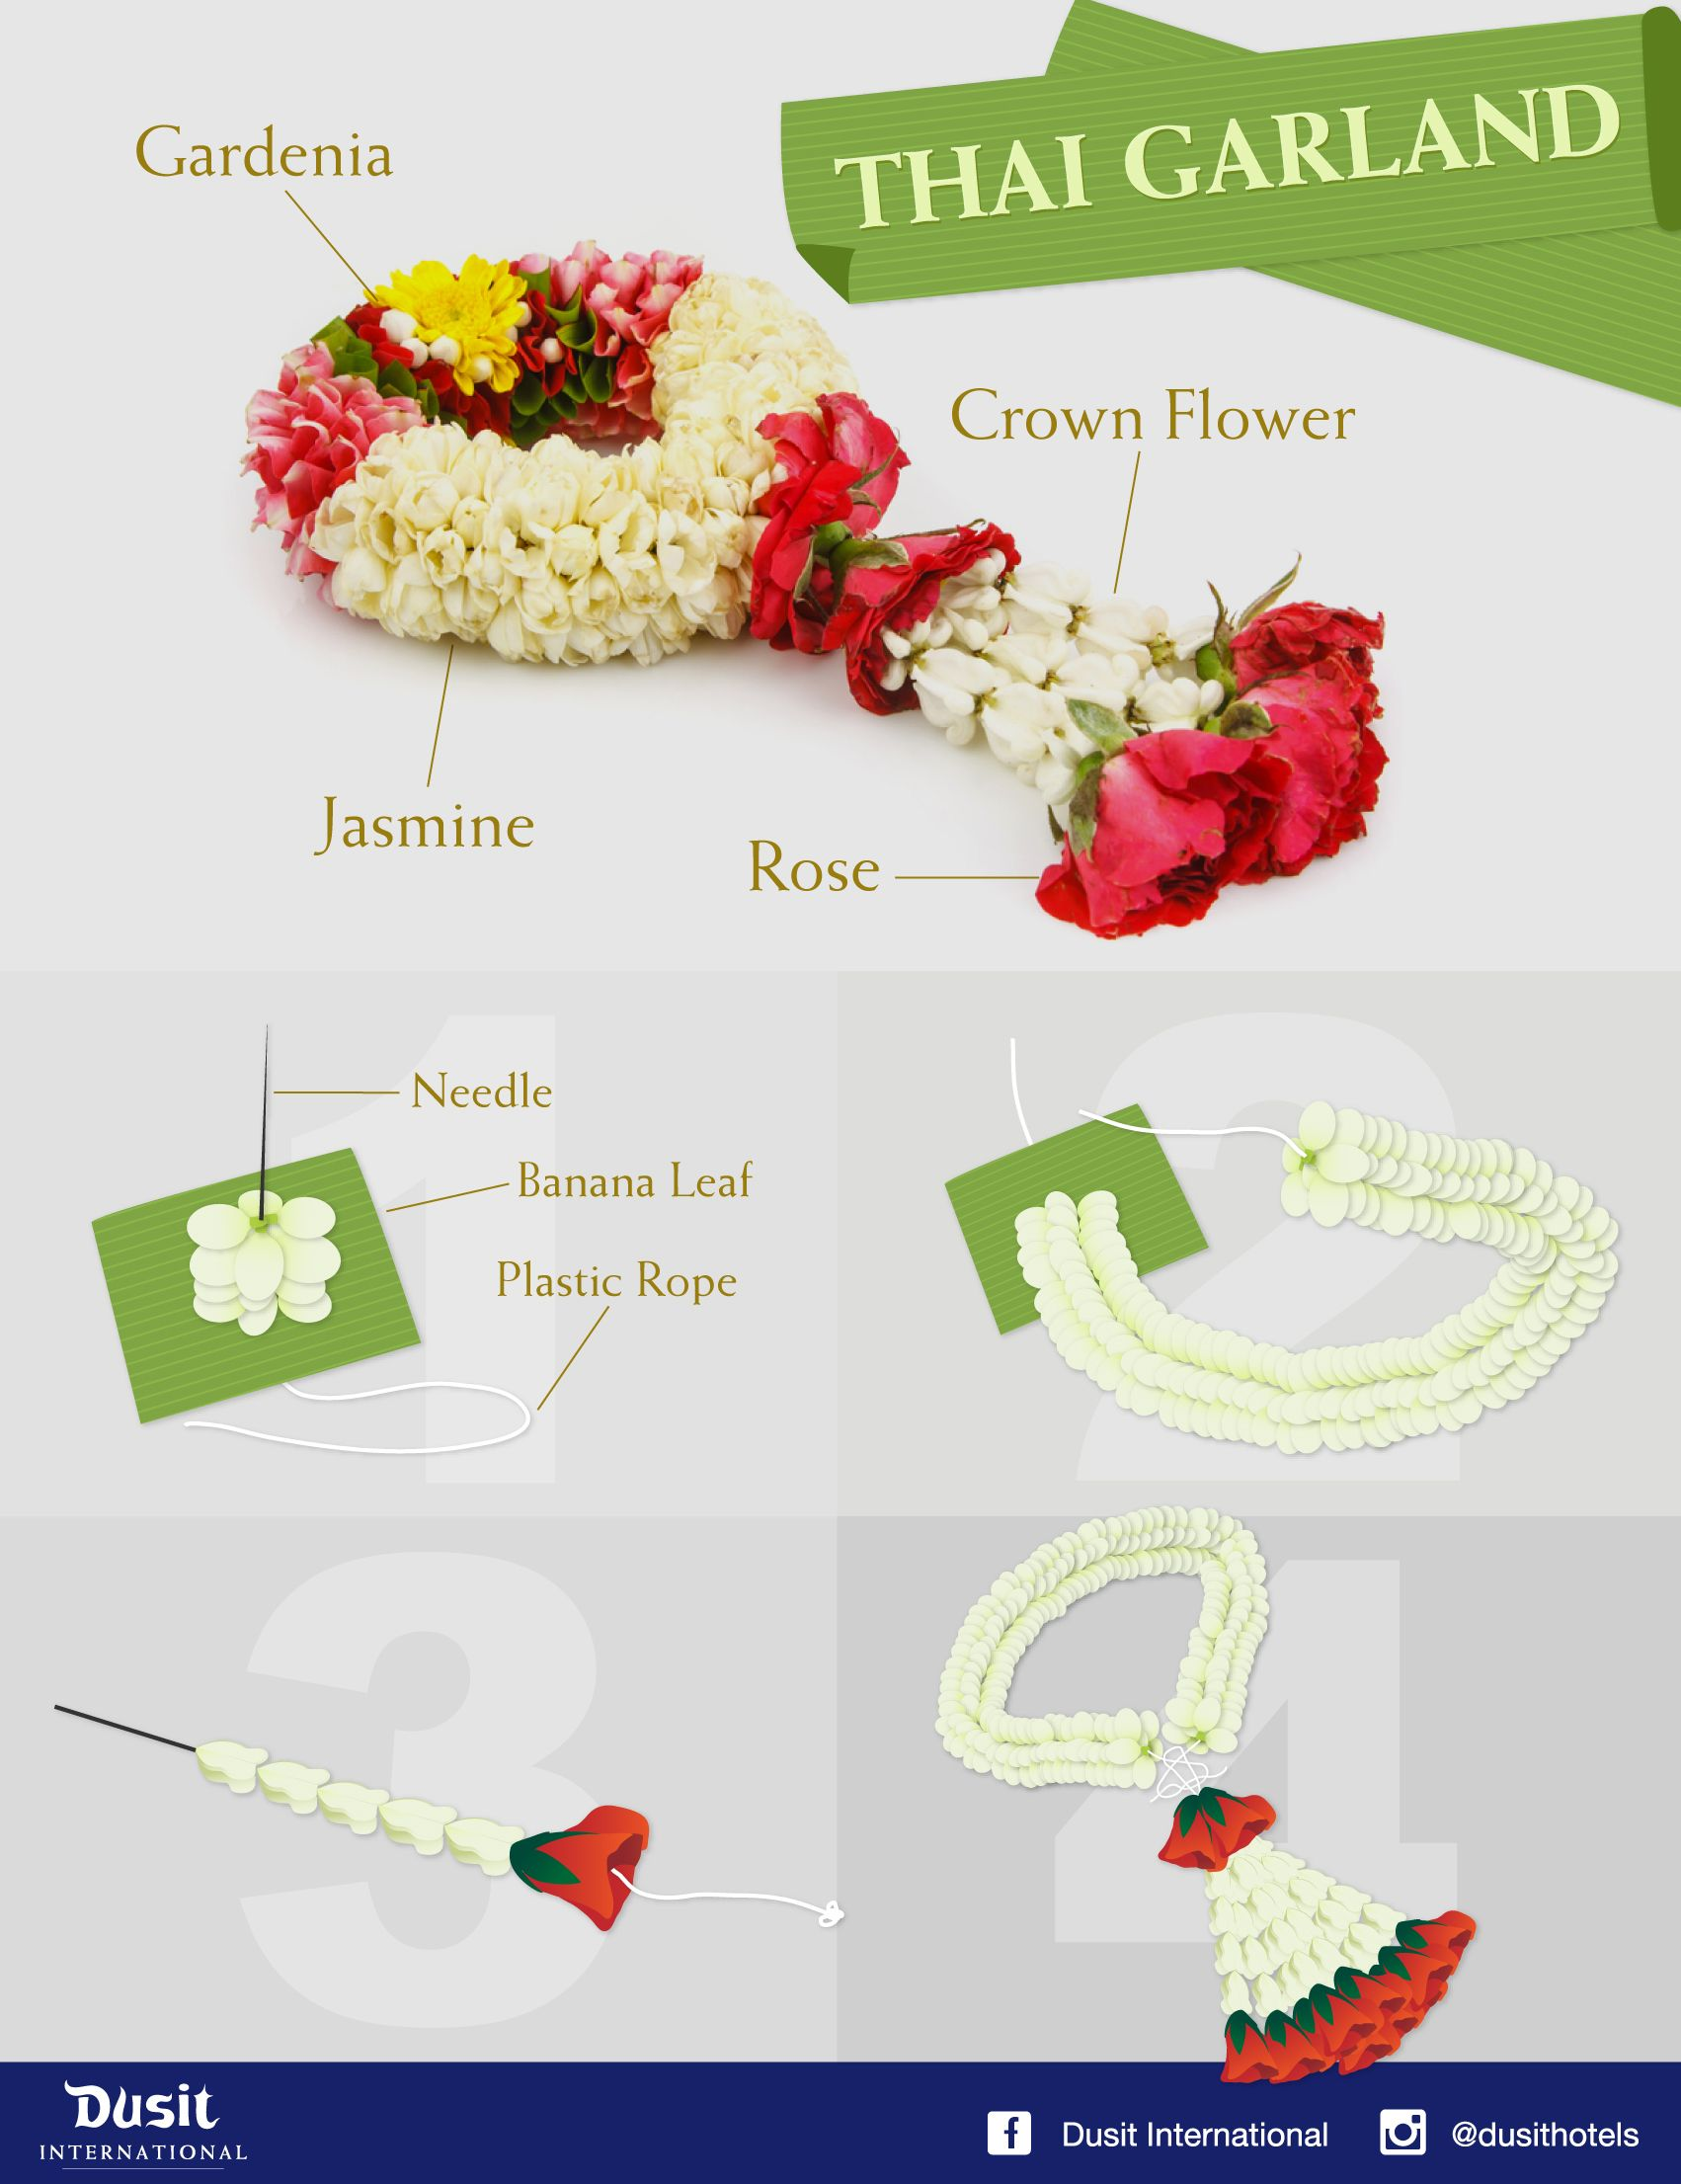 How To Make Thai Garland Infographic Tips Howto Tips And